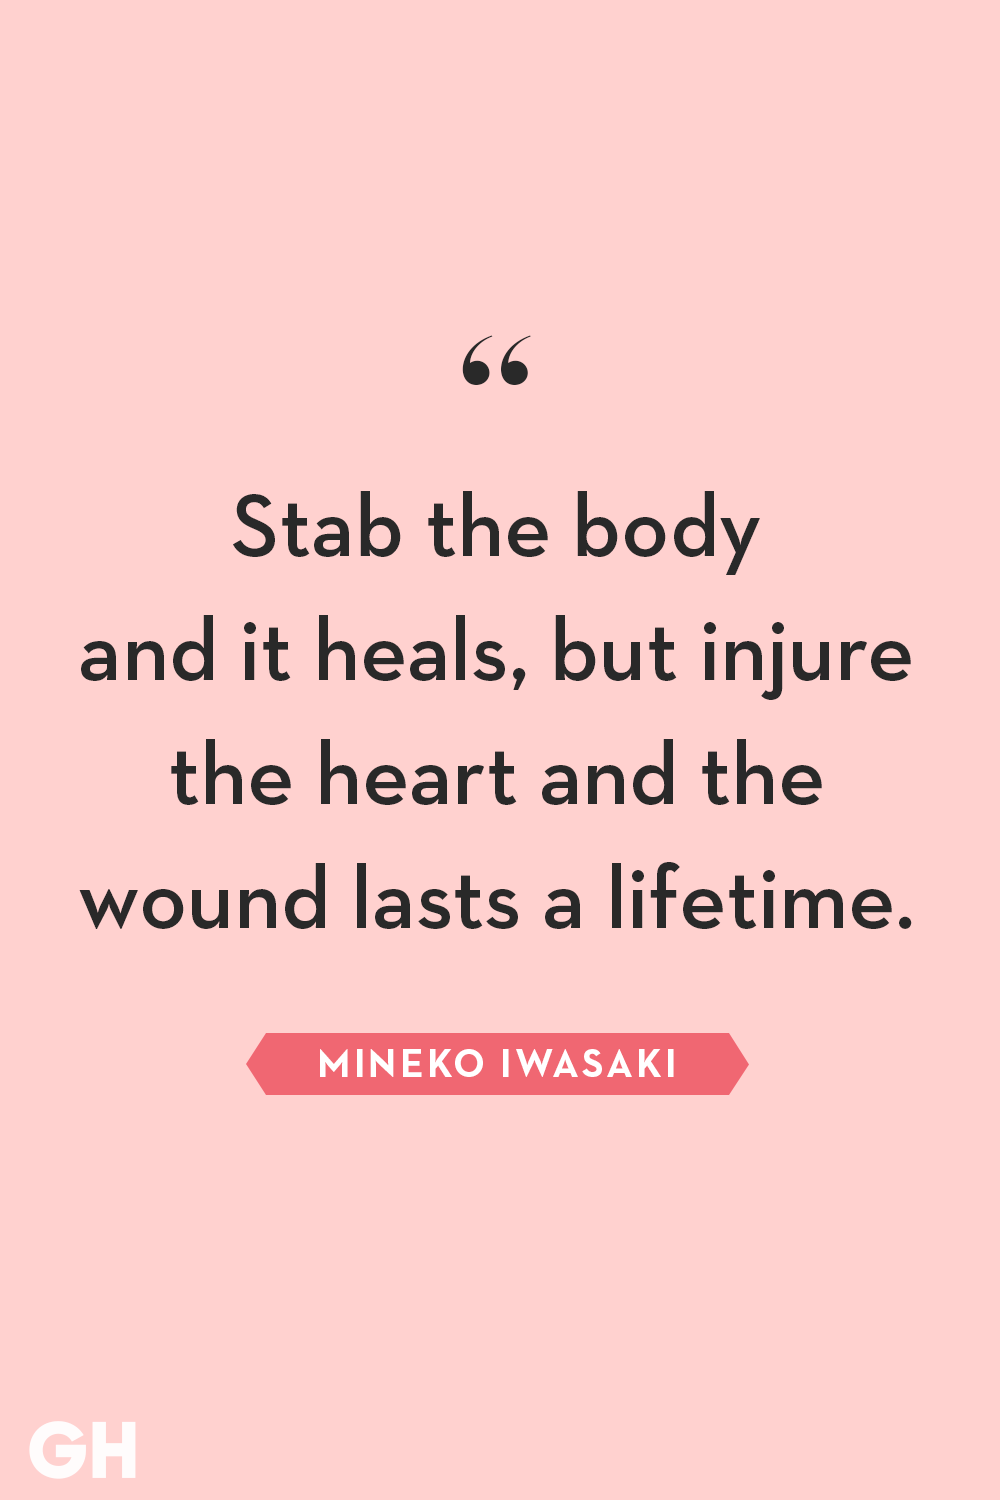 51 Quotes About Broken Hearts - Wise Words About Heartbreak